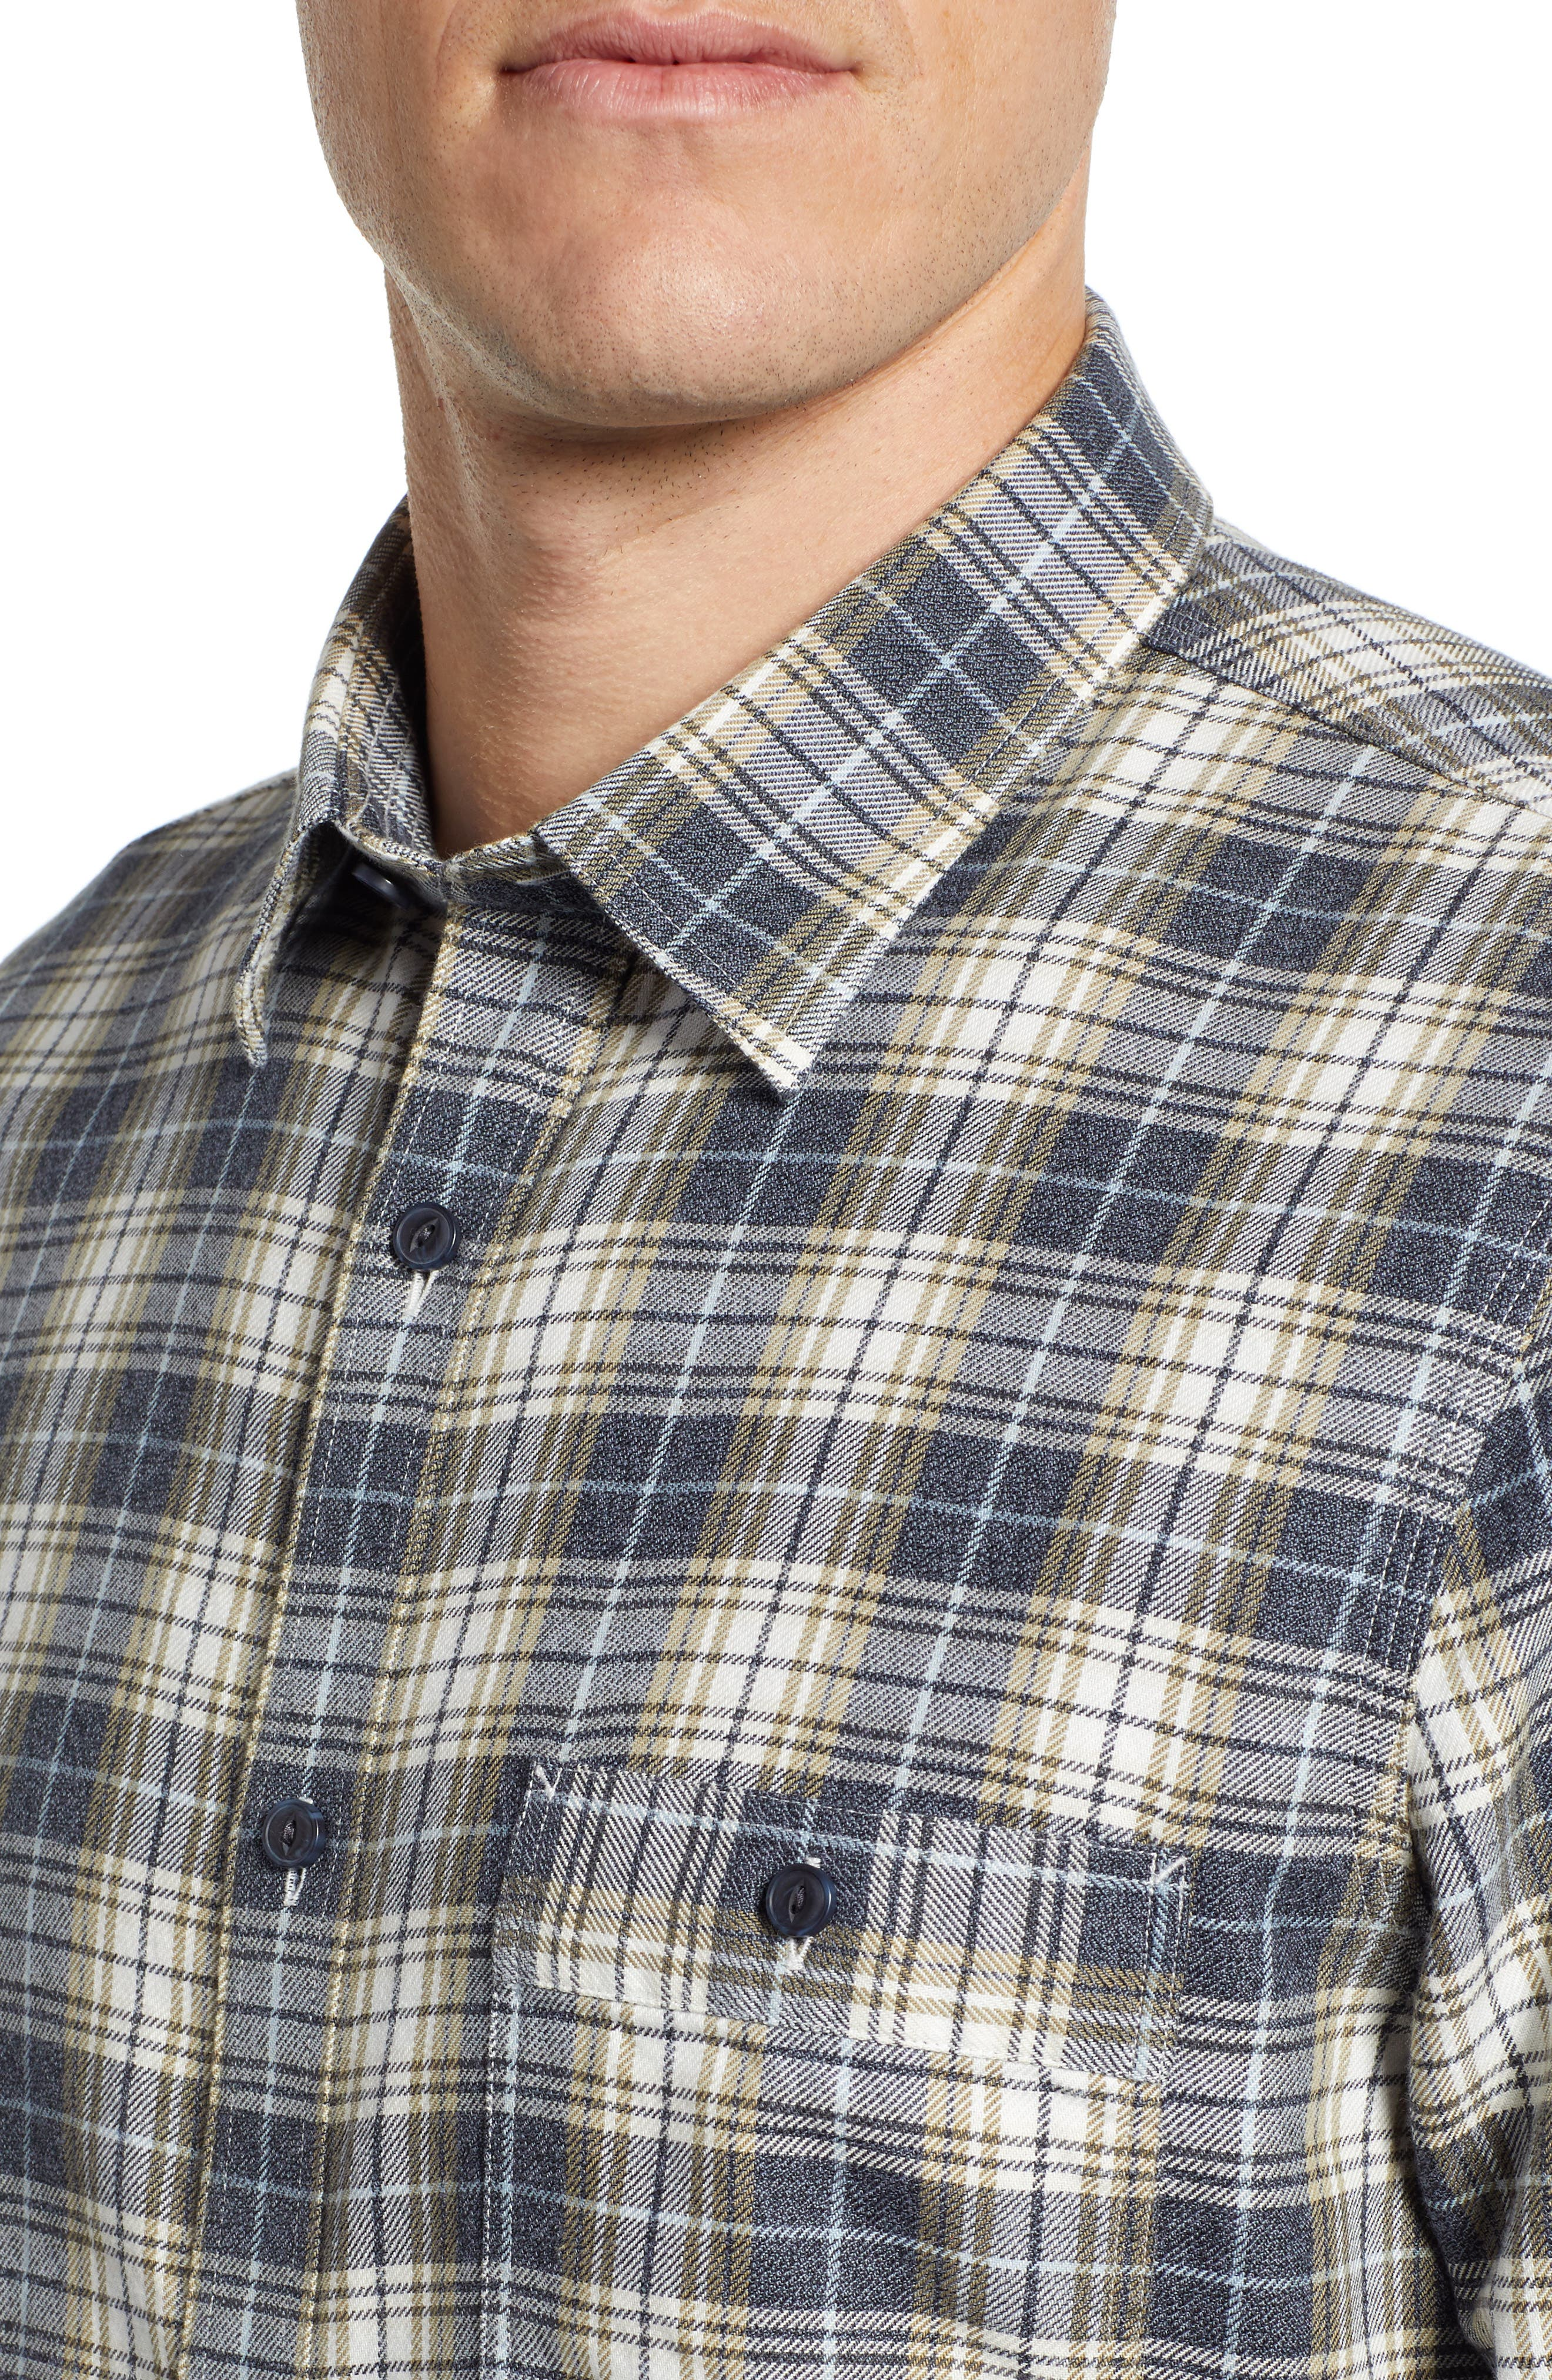 Trucker Regular Fit Plaid Flannel Shirt,                             Alternate thumbnail 4, color,                             IVORY EGRET TWILL PLAID